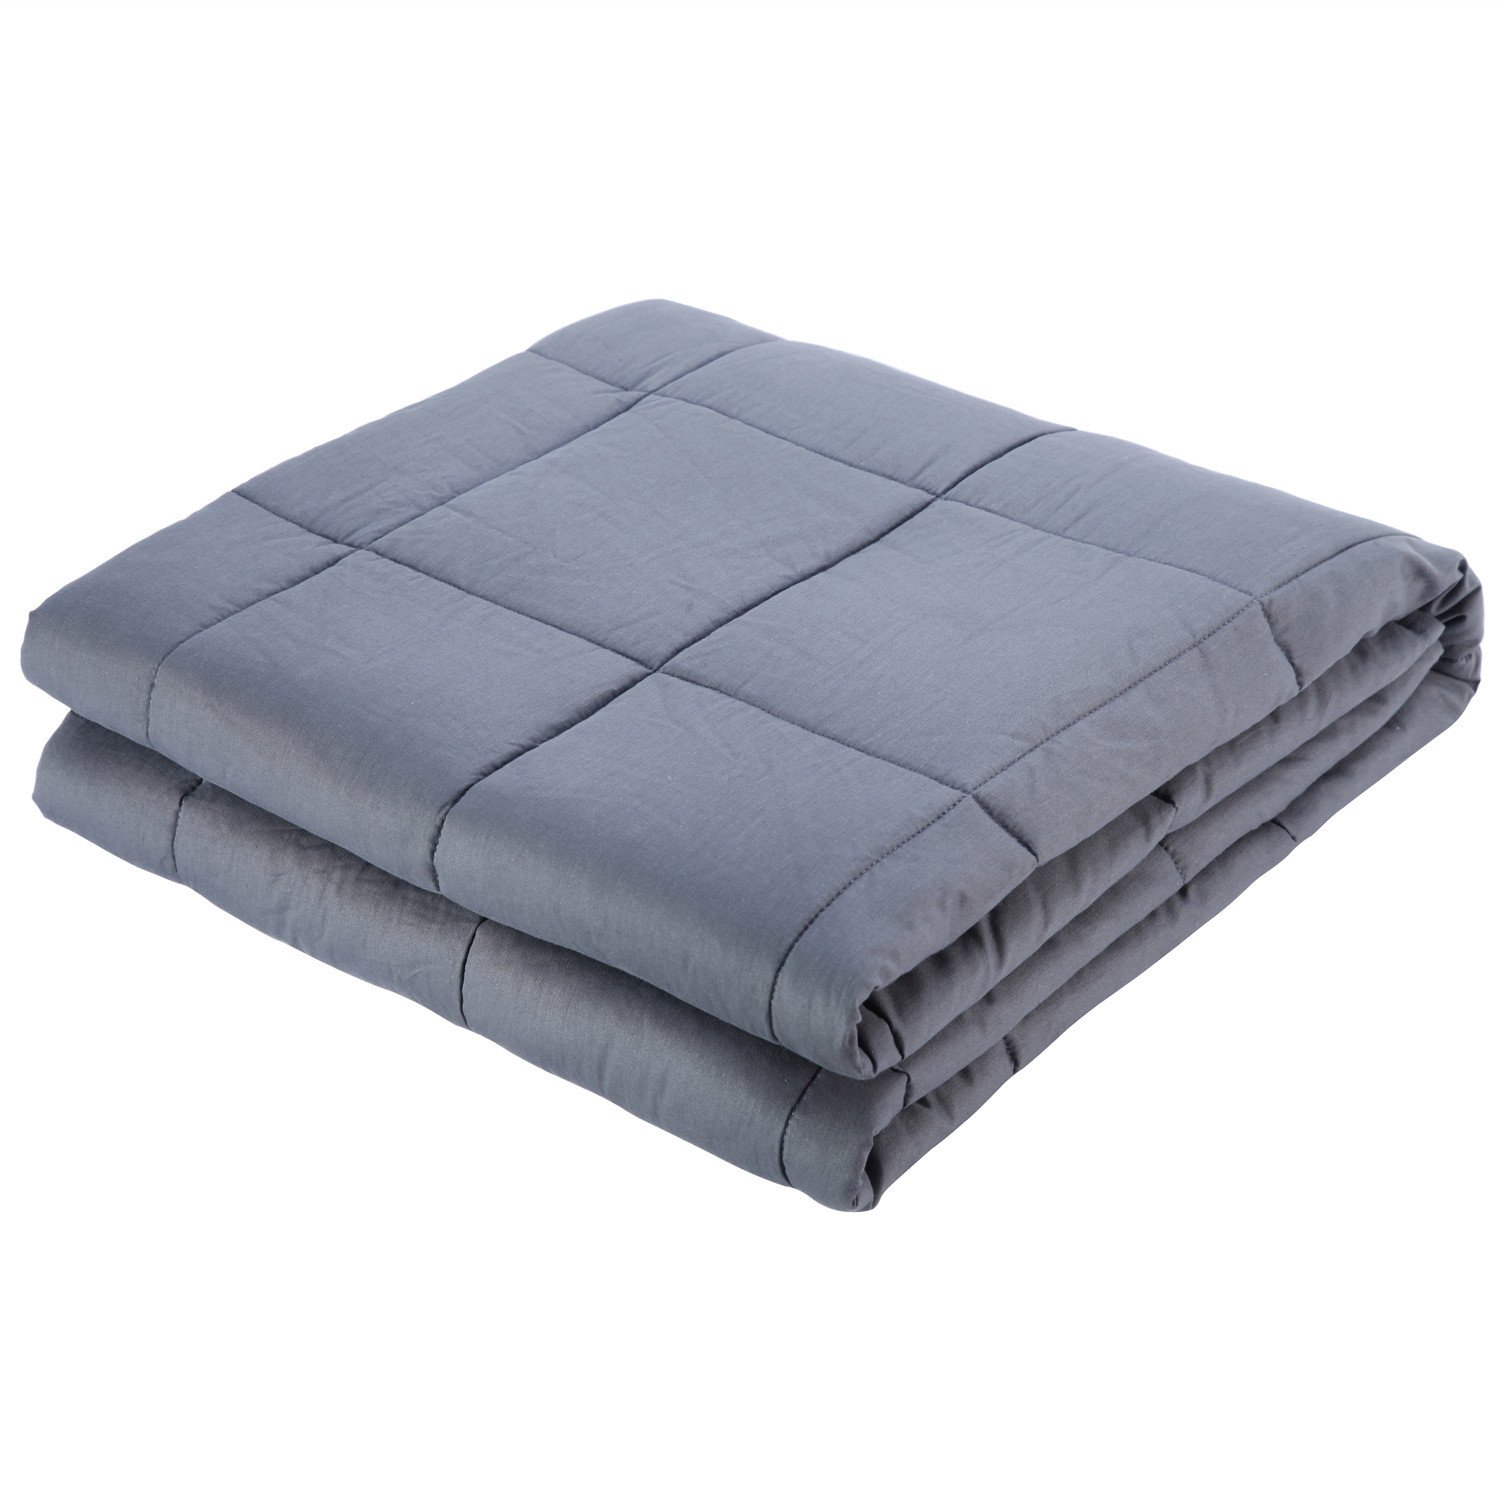 """Royhom Weighted Blanket for Man & Woman, Dark Grey 60"""" x 80"""" - 15lbs for 100-150lbs Individual, Great for Anxiety, Insomnia, Autism, ADHD, PTSD and sensory processing disorders"""